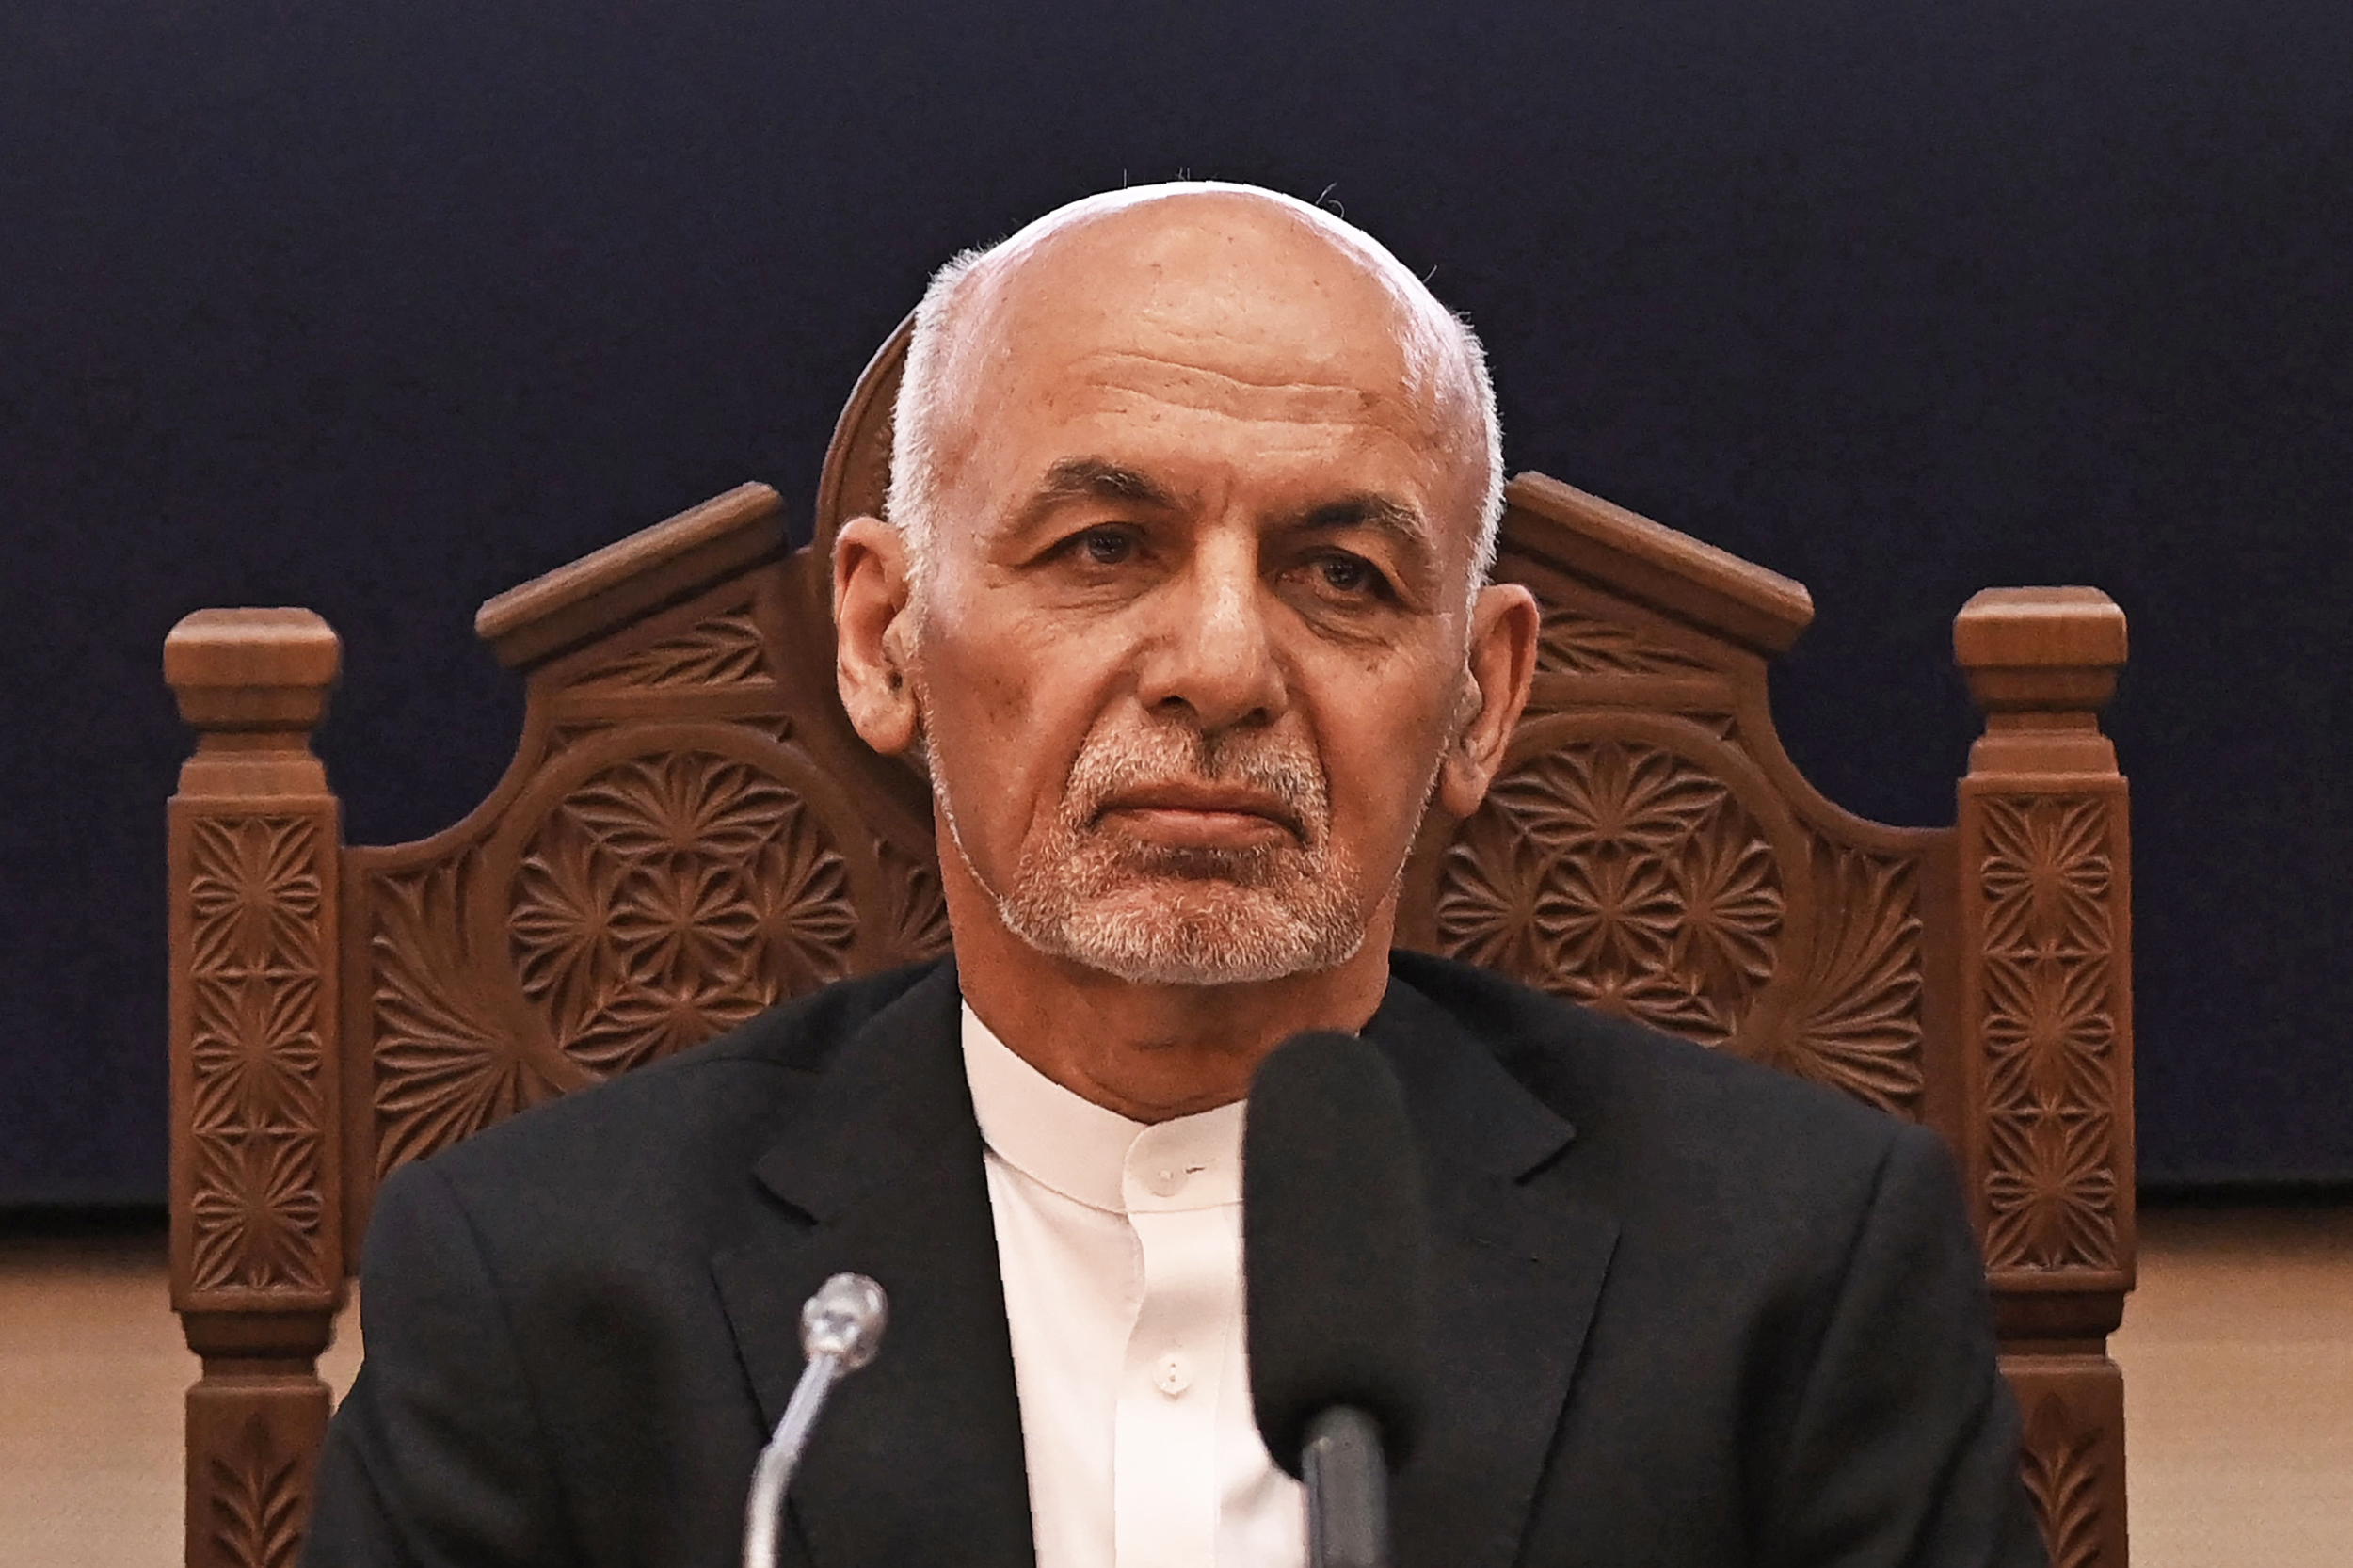 He spent years trying to modernize Afghanistan. It took weeks for his state to collapse.